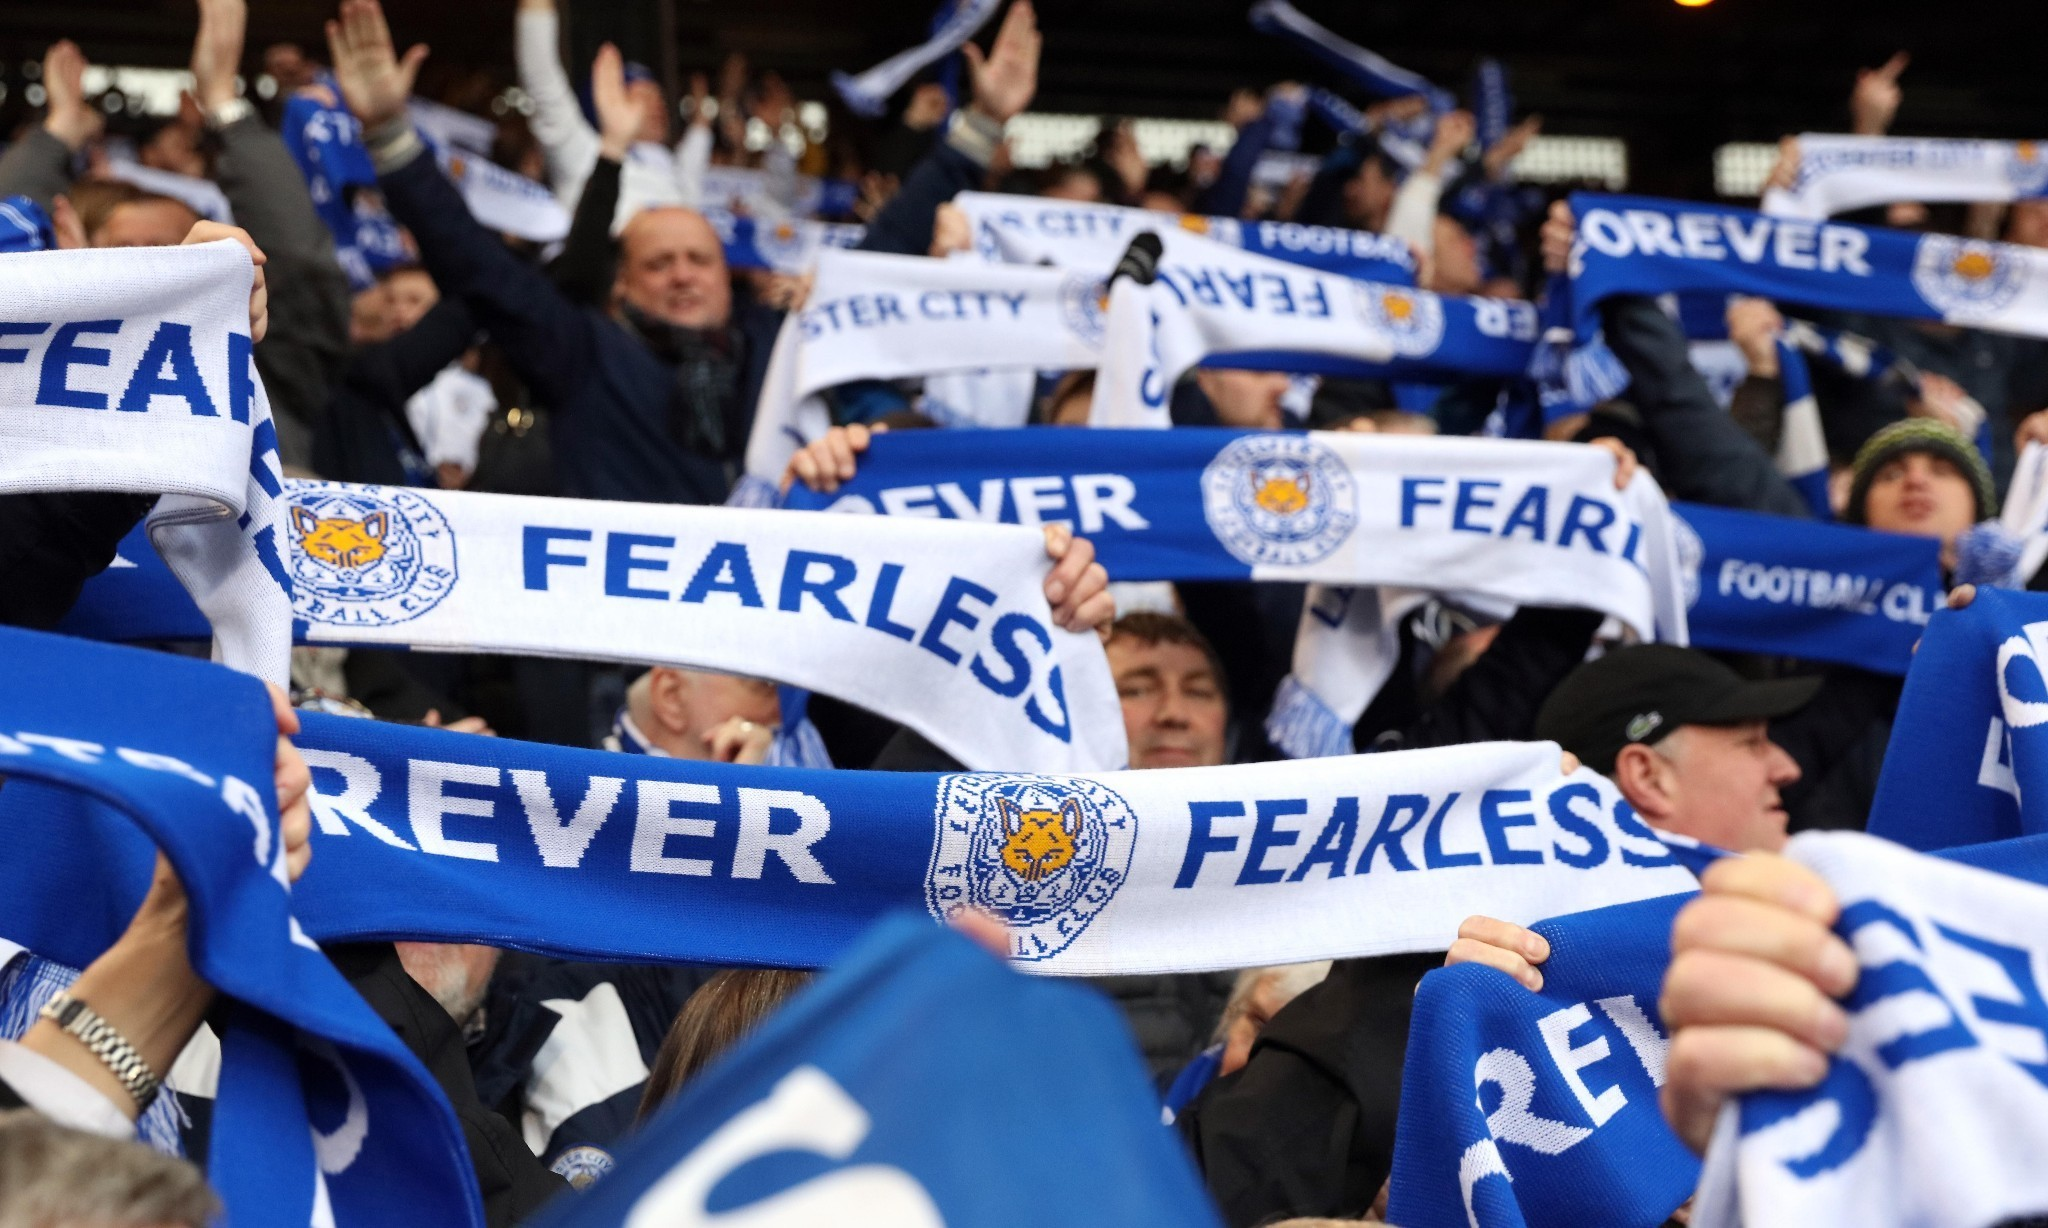 Leicester City's march to glory: how a stellar season unfolded, game by game